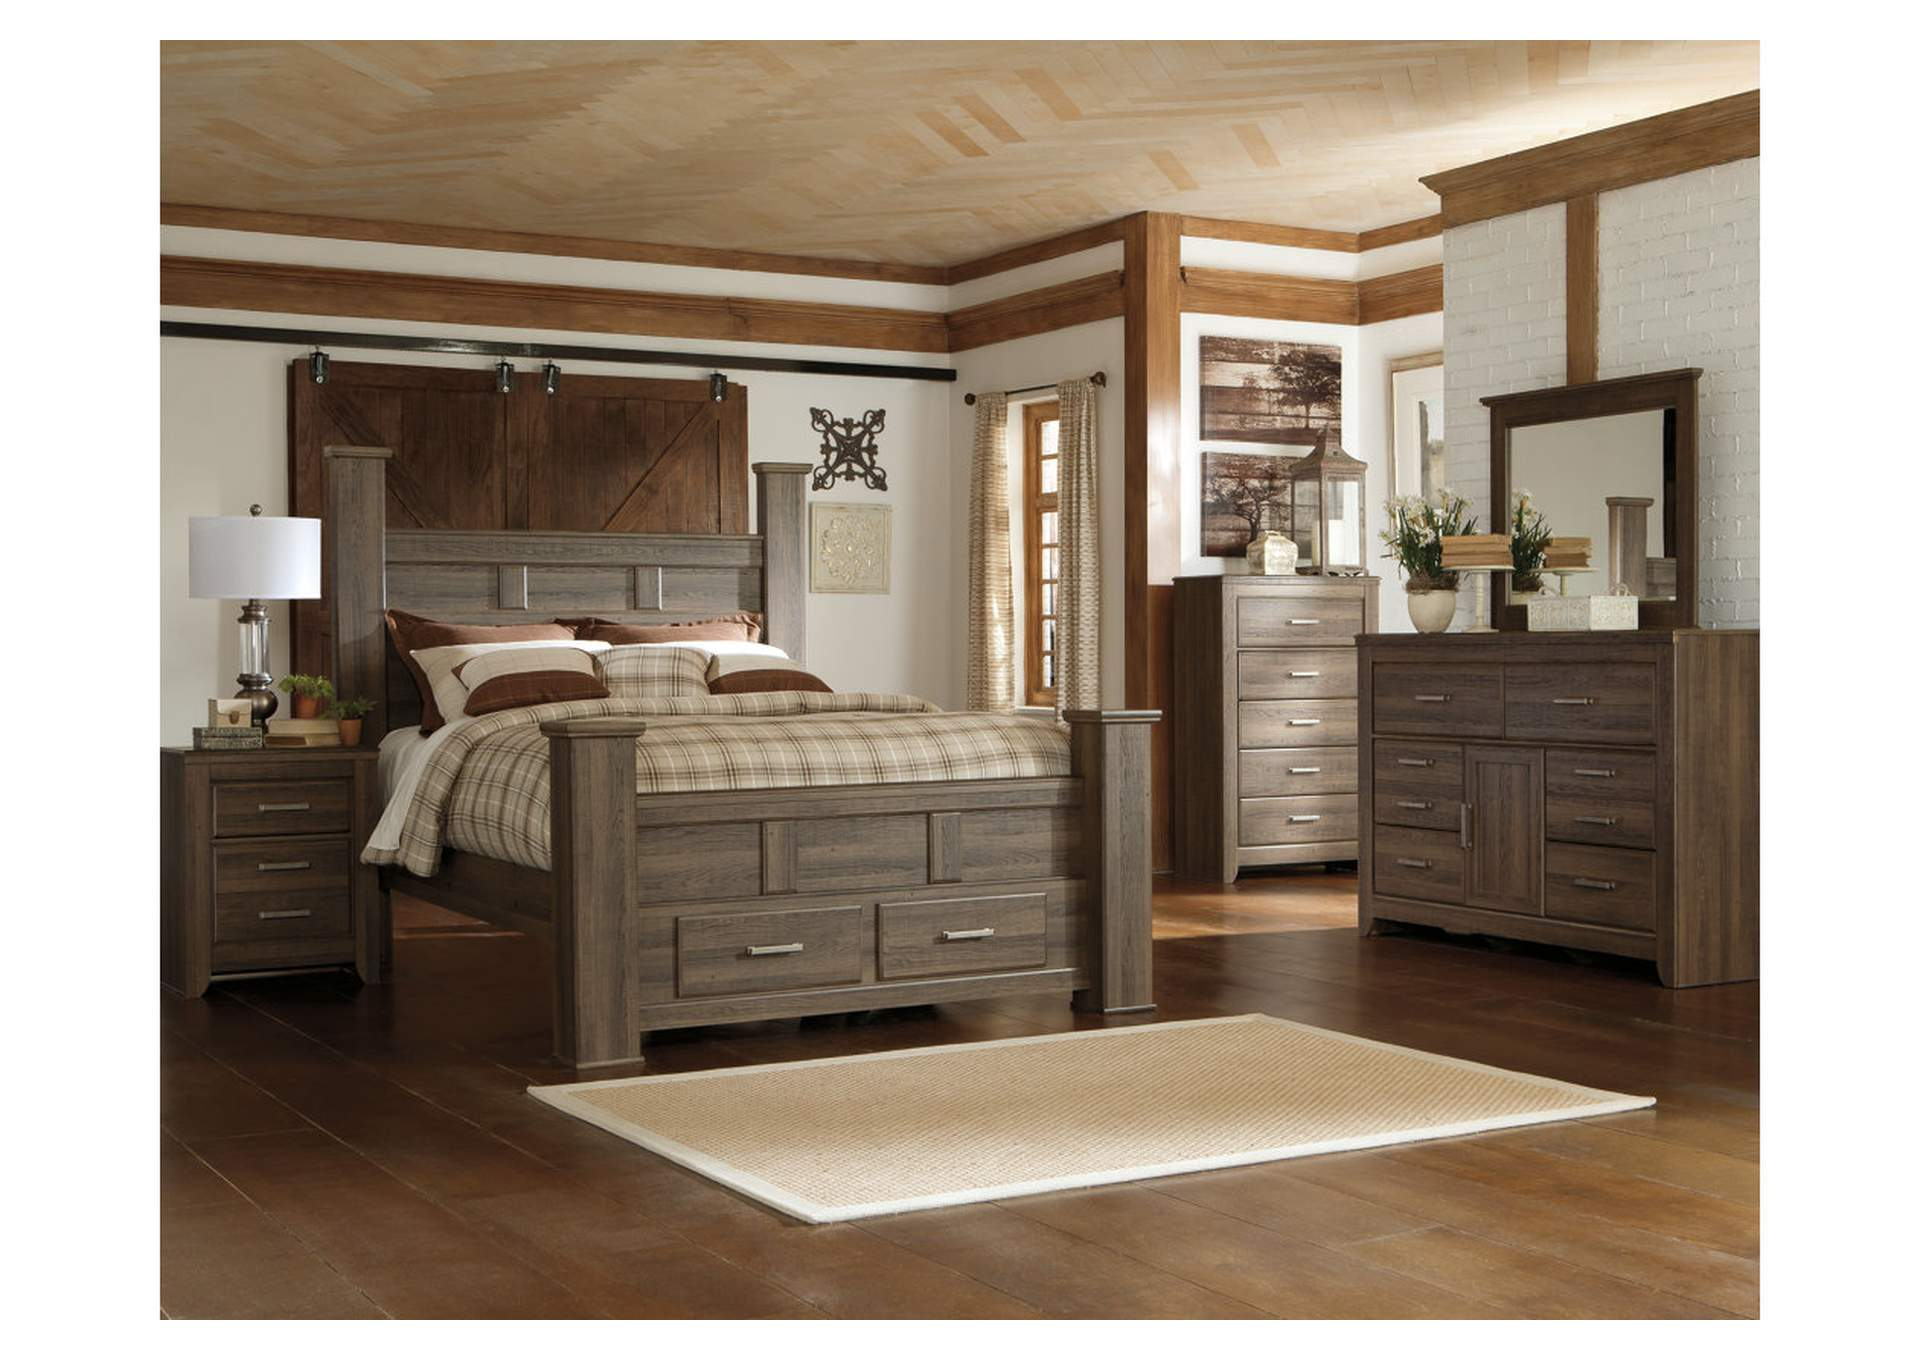 Juararo King Poster Storage Bed w/Dresser, Mirror, Drawer Chest & Nightstand,Signature Design By Ashley